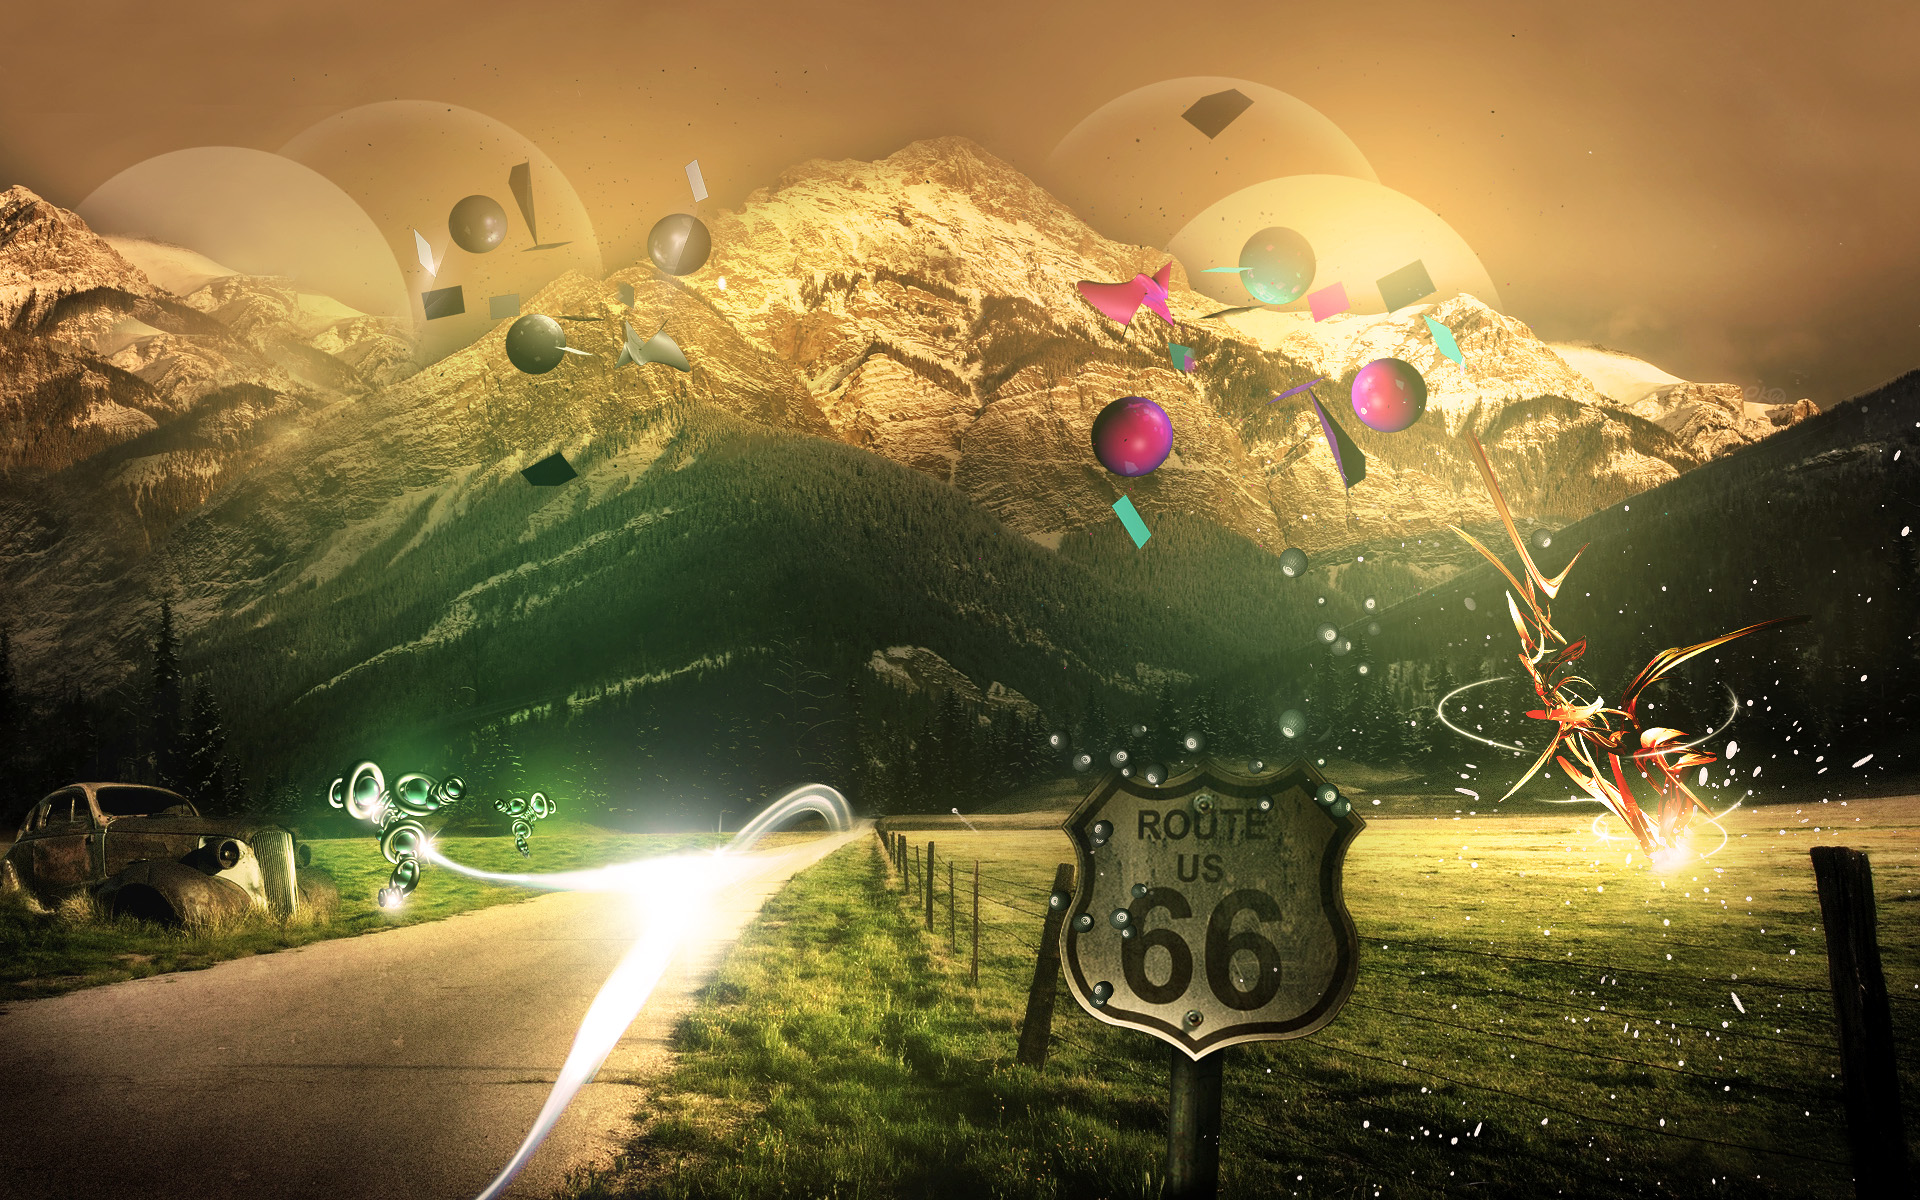 Mountains Route 66 Wallpapers HD Wallpapers 1920x1200